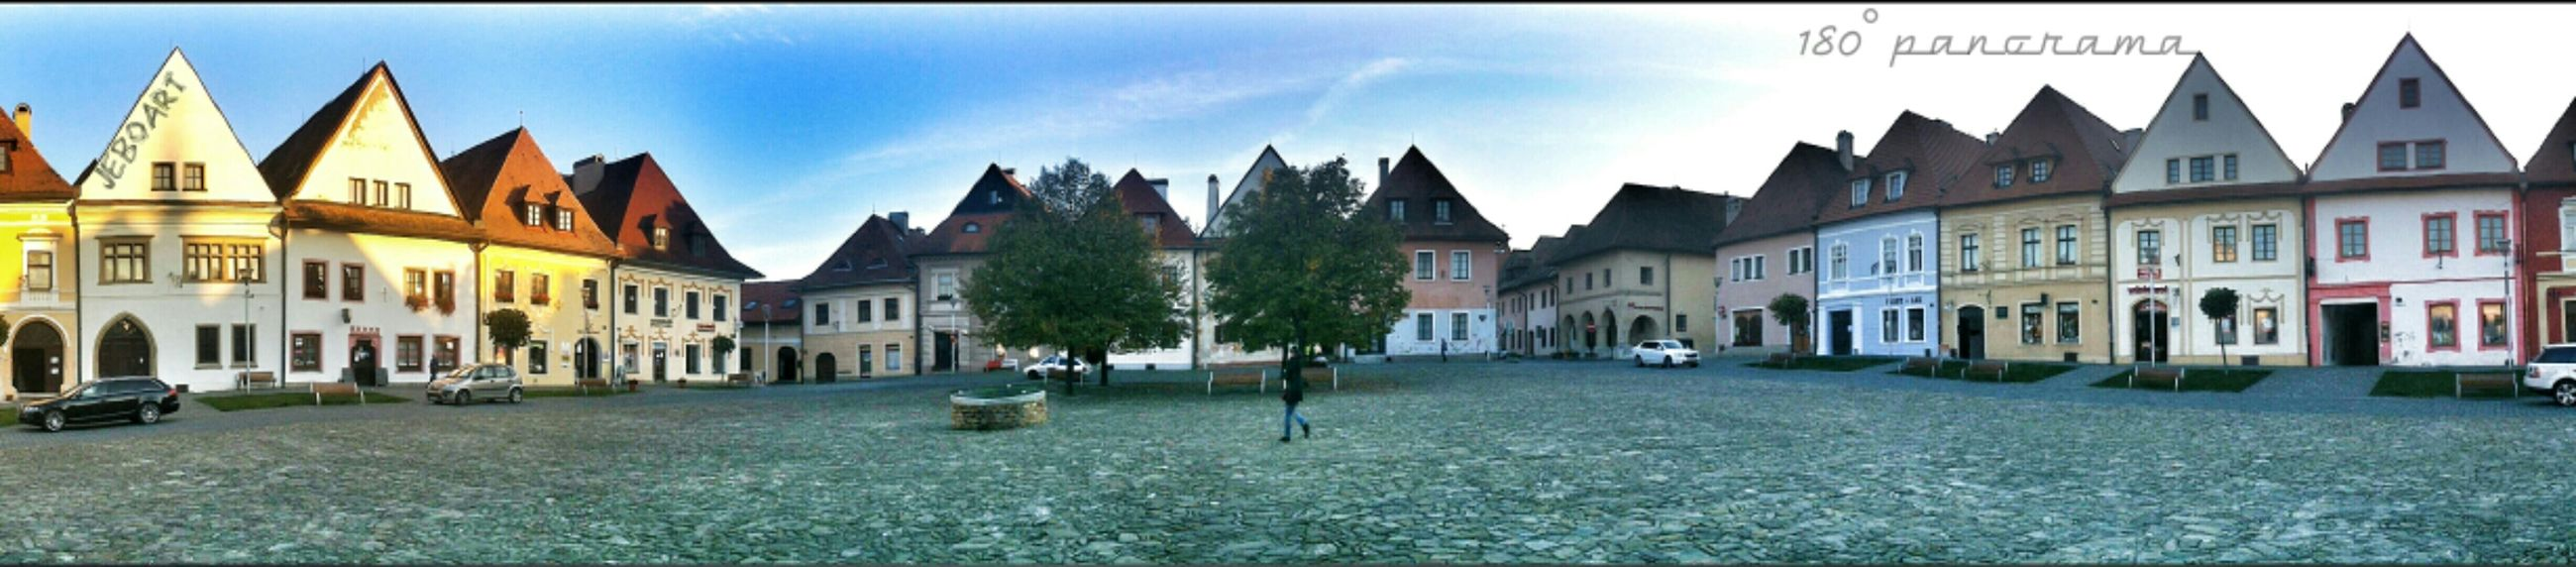 Architecture Trees Historical Building Travel Square Panorama Photography My Town Old Town Old Buildings 180° Bardejov Squaready